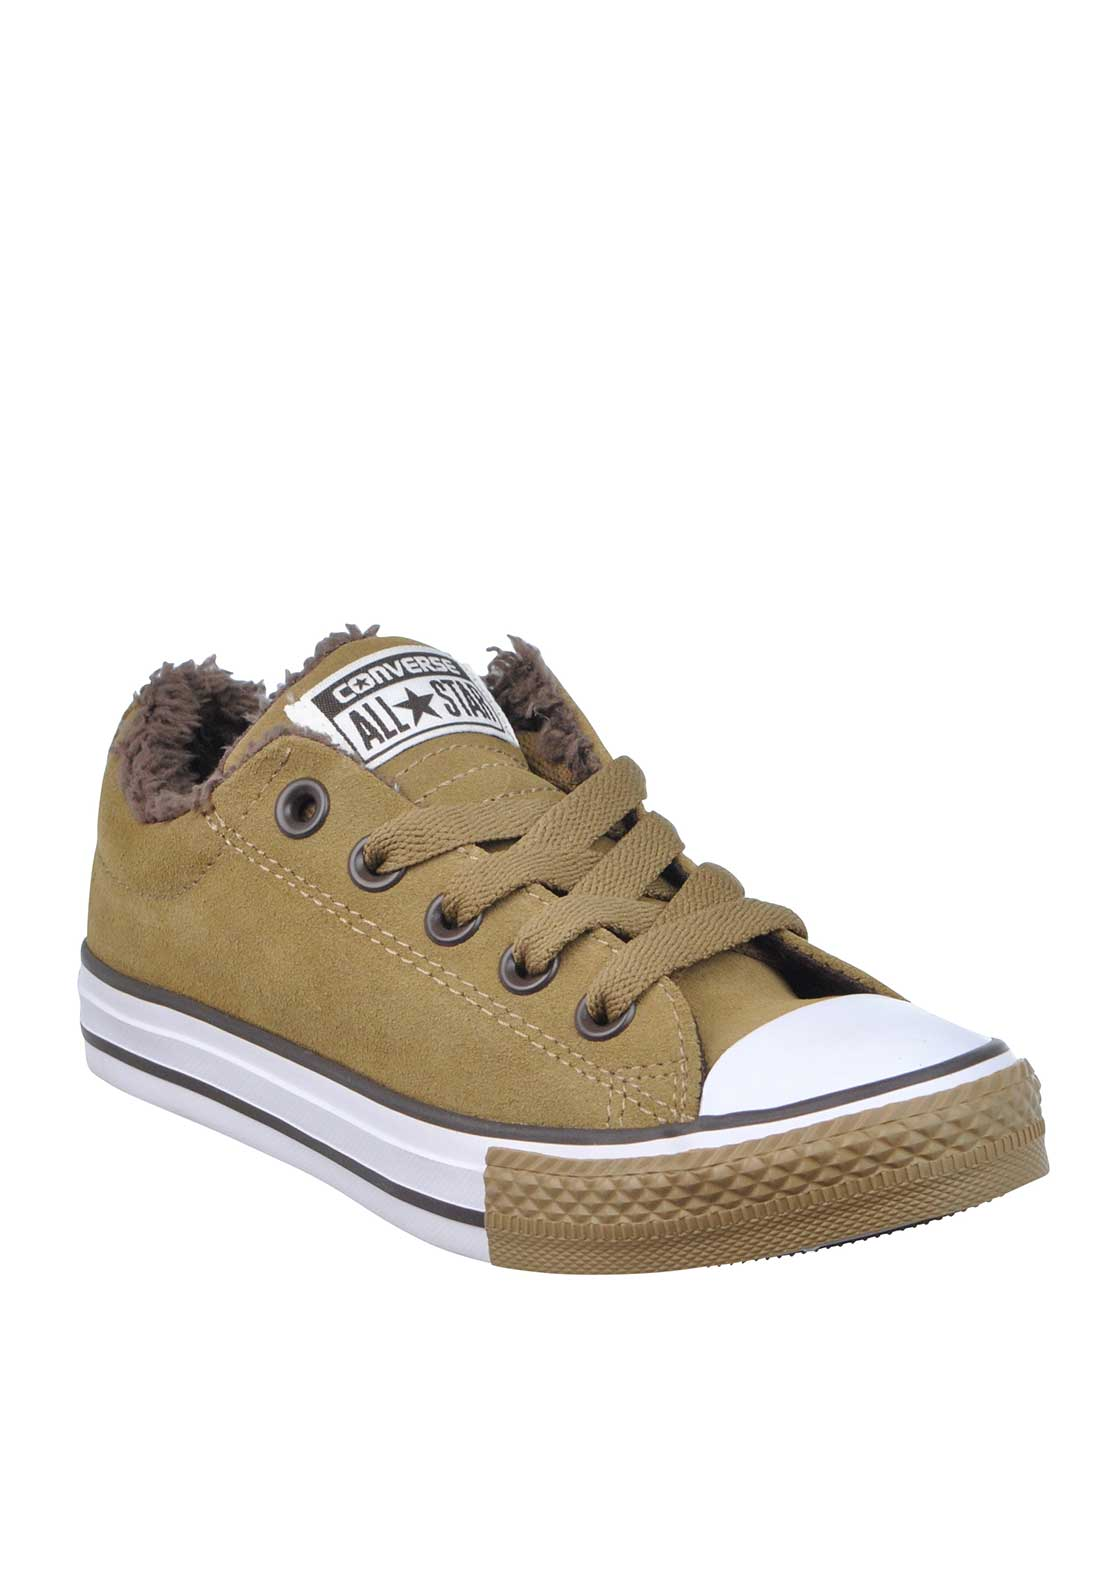 Converse Boys Suede Fleece Lined All Star Trainers, Tan